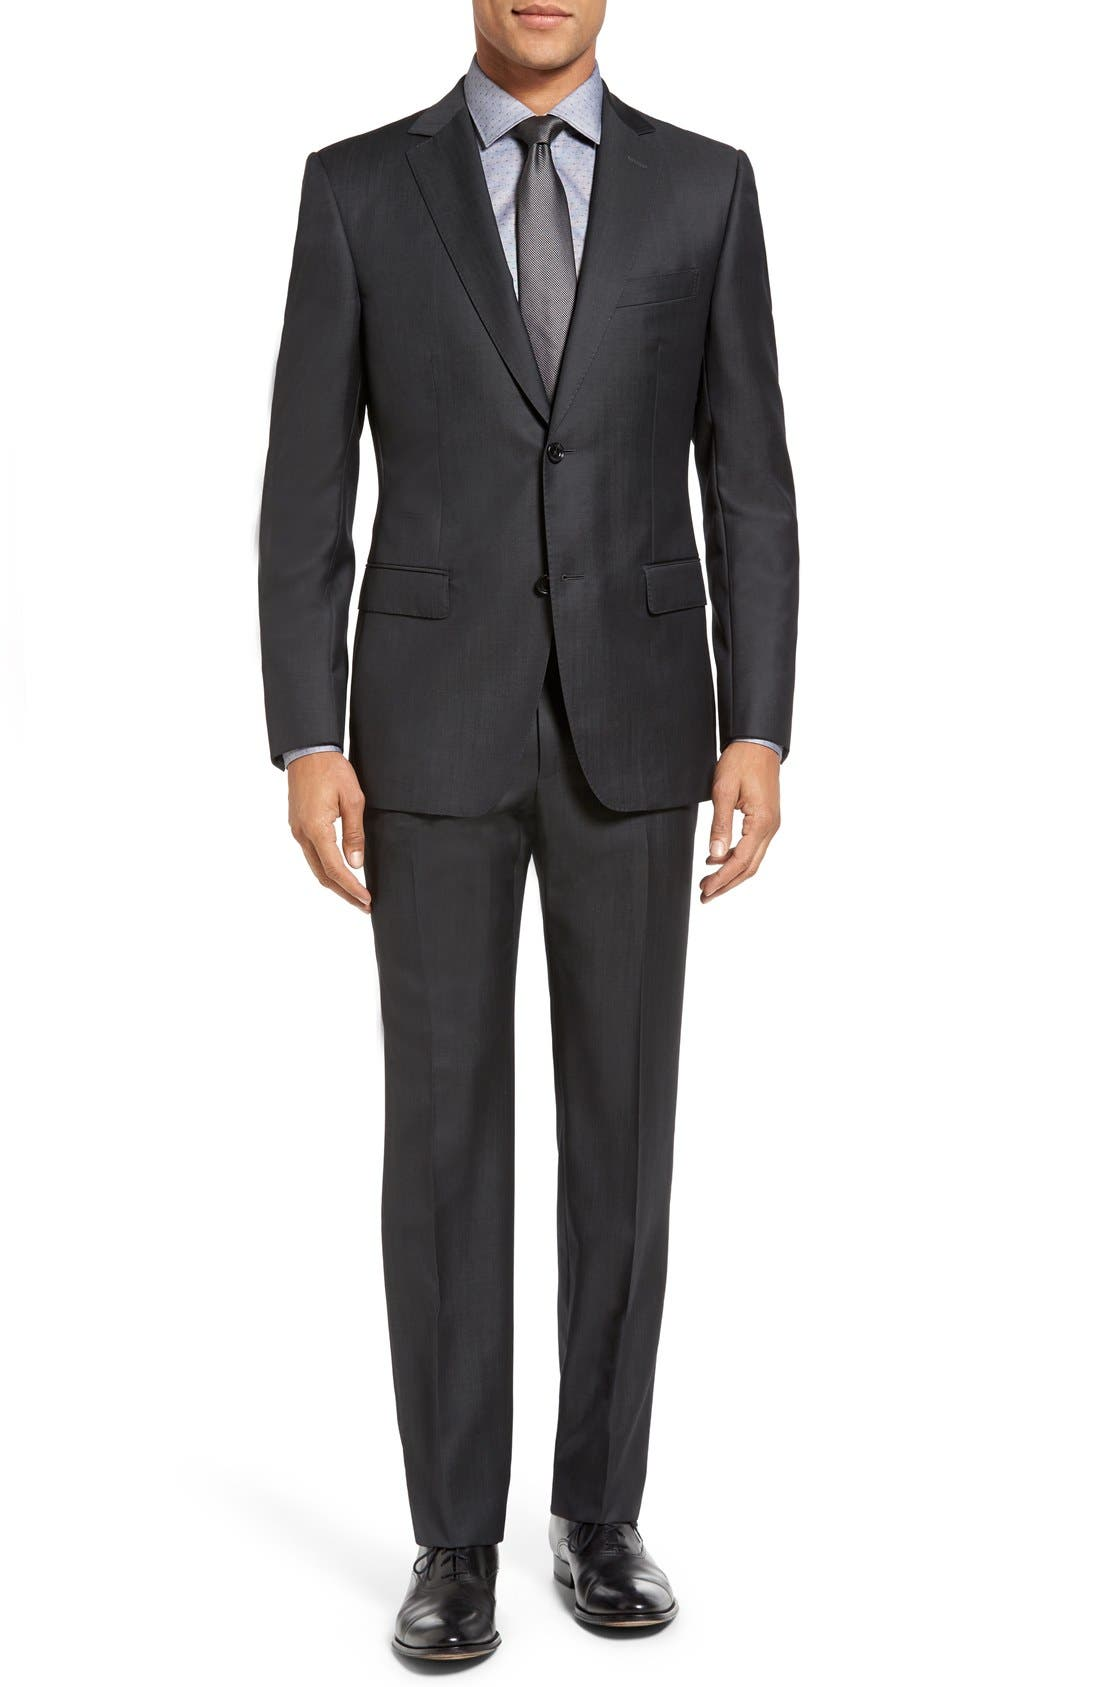 Alternate Image 1 Selected - Z Zegna Trim Fit Solid Wool Suit